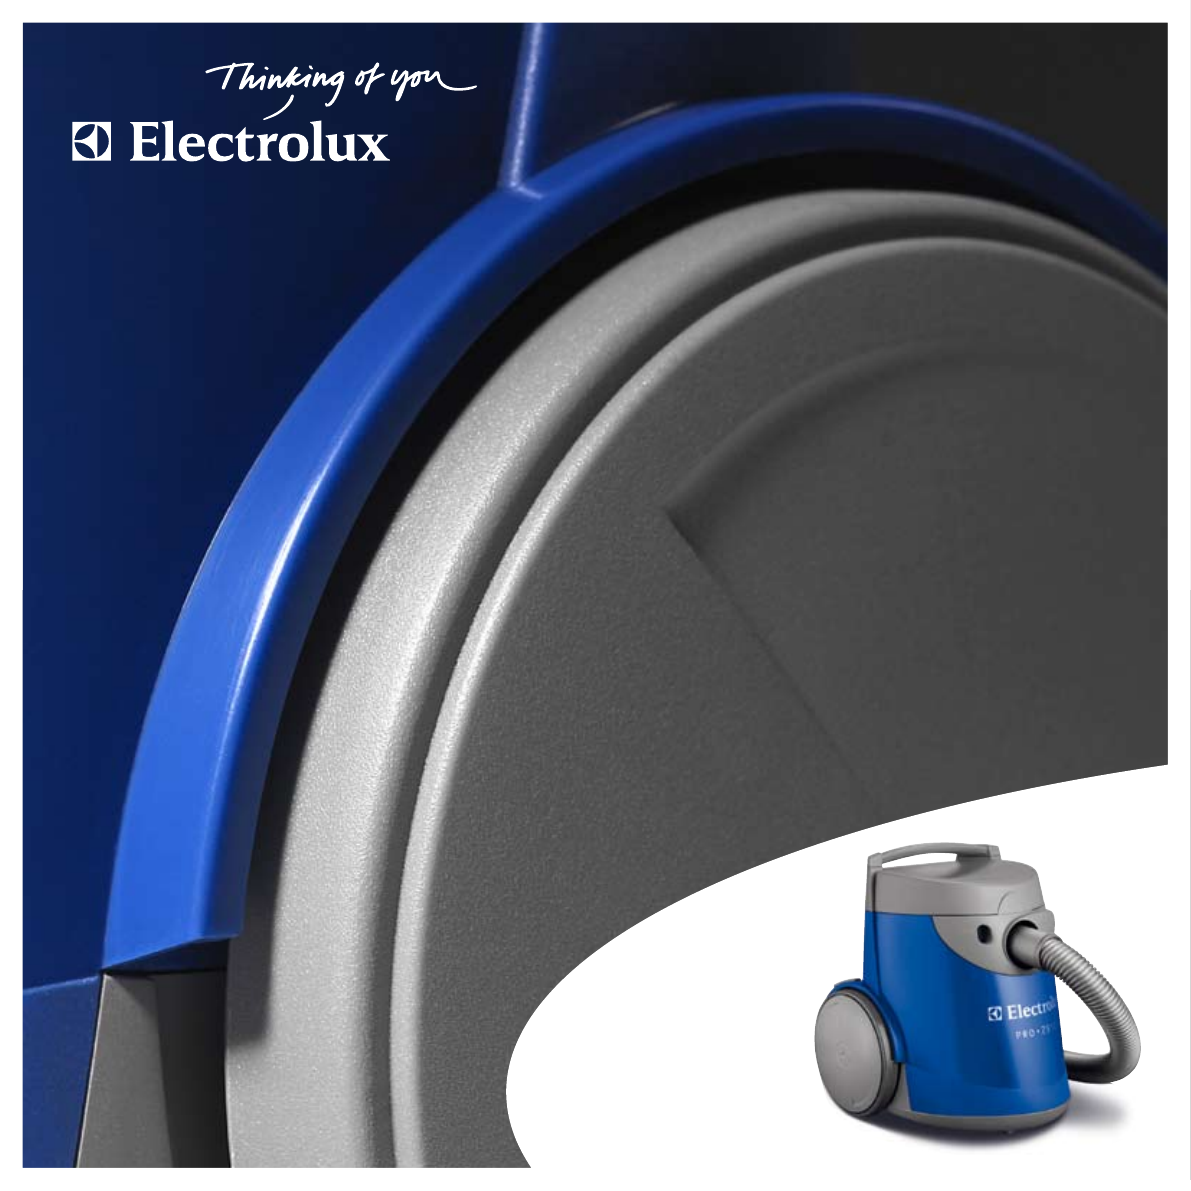 Electrolux Vacuum Cleaner Pro Z910 User Guide